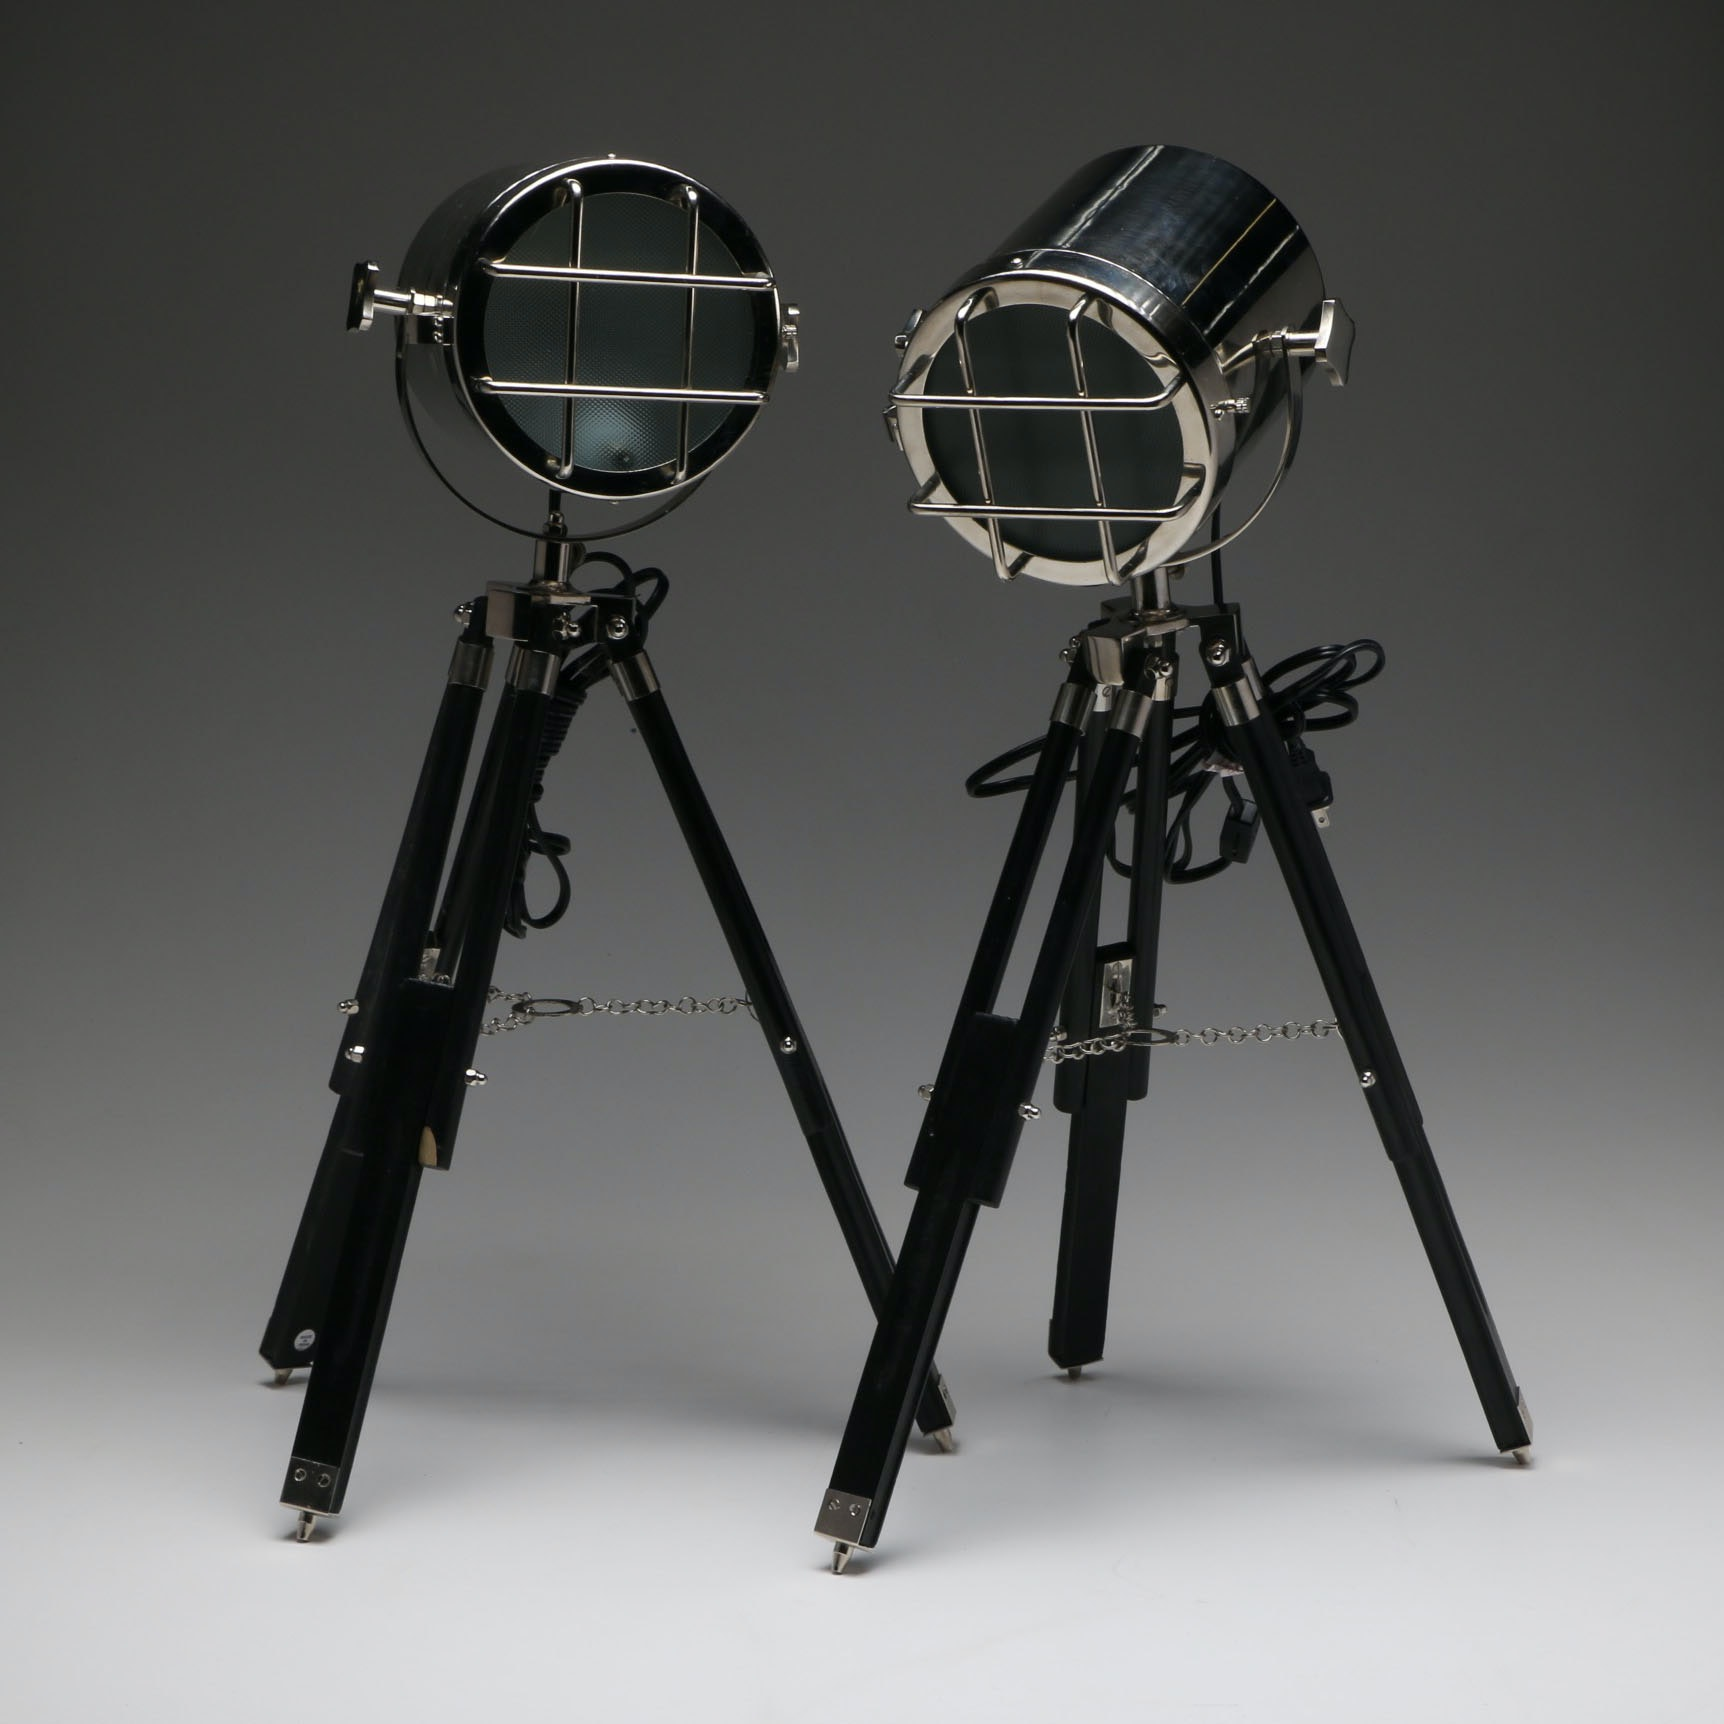 Pair of Lights on Tripod Bases